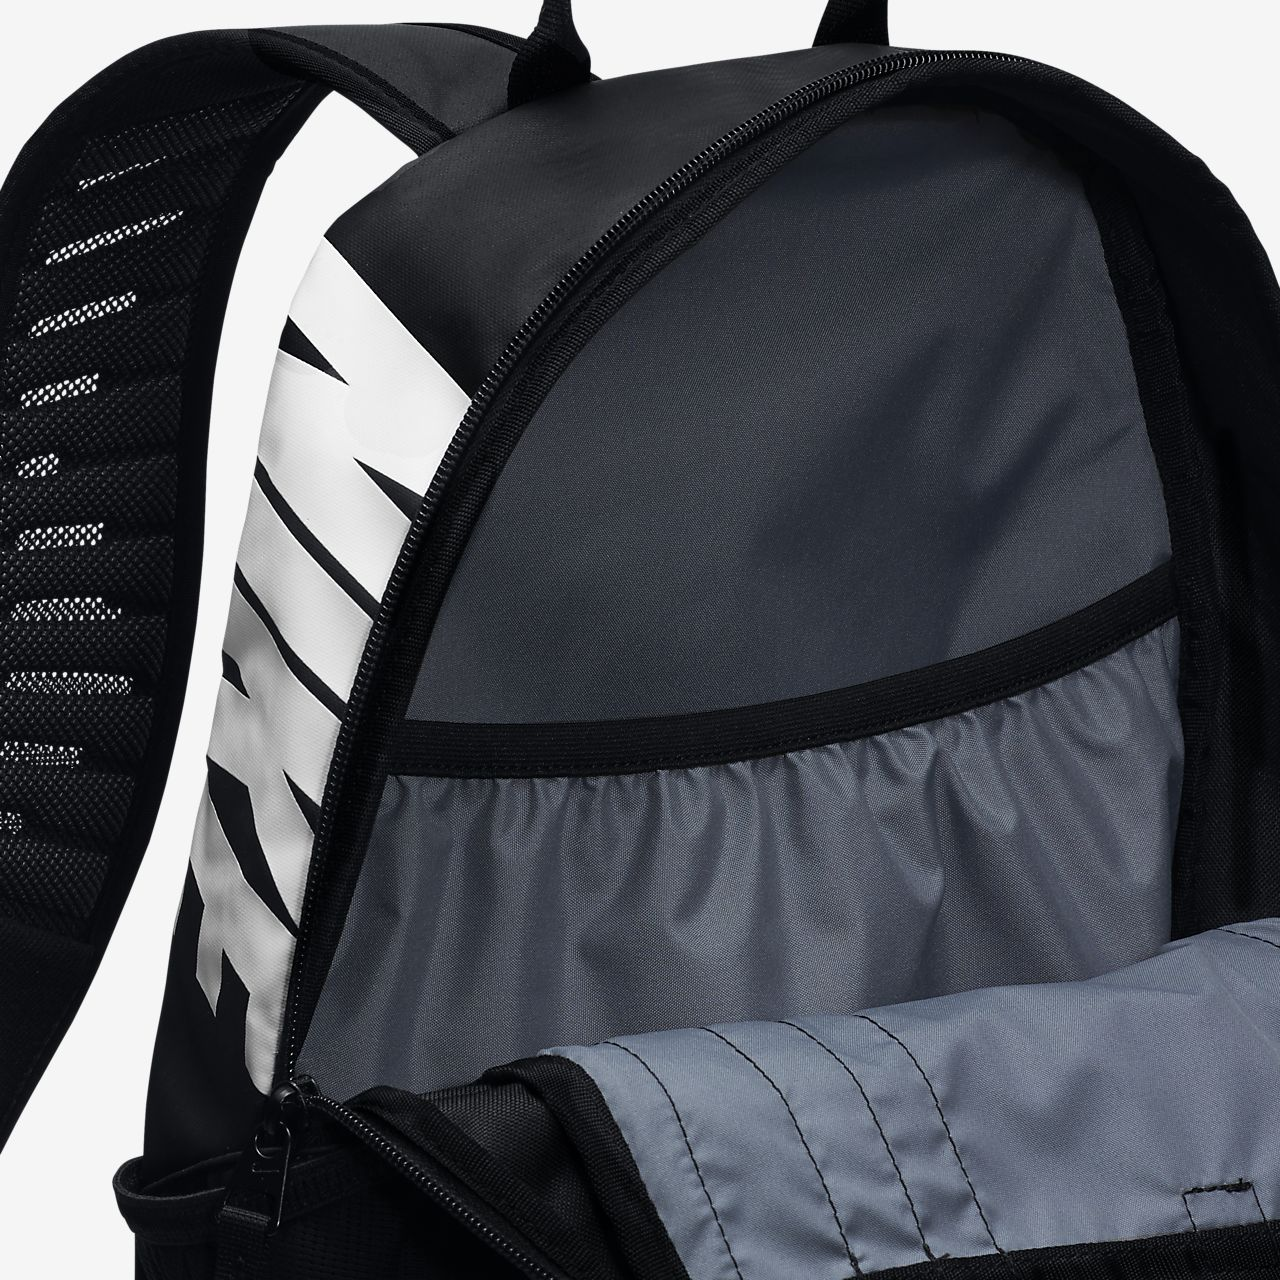 ce670fbec5 Nike Alpha Adapt Rev Backpack. Nike.com SG